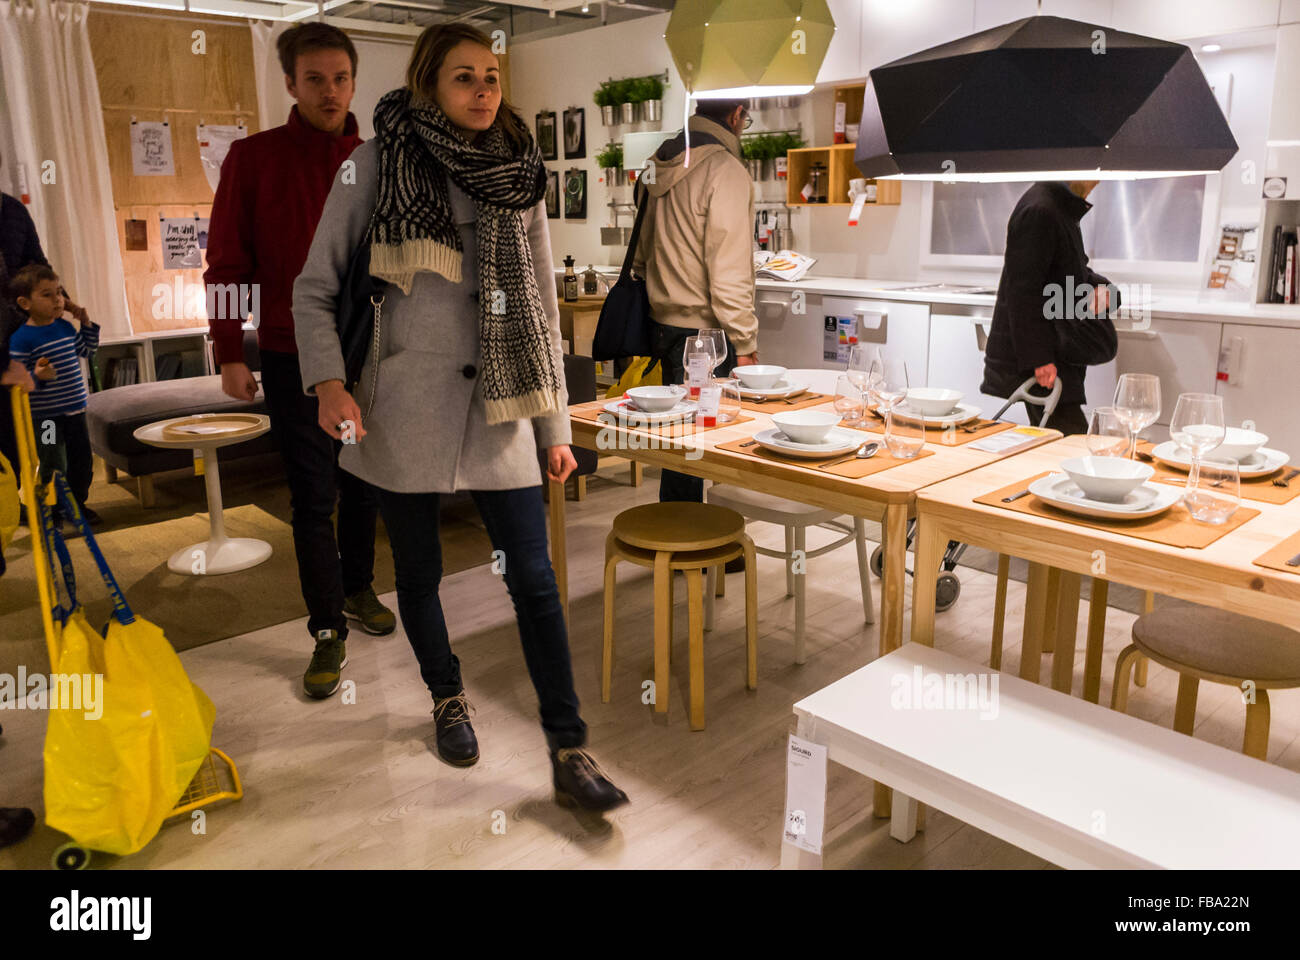 Paris france young adult couple shopping in modern diy housewares store ikea kitchen ready to assemble furniture appliances scandinavian interior